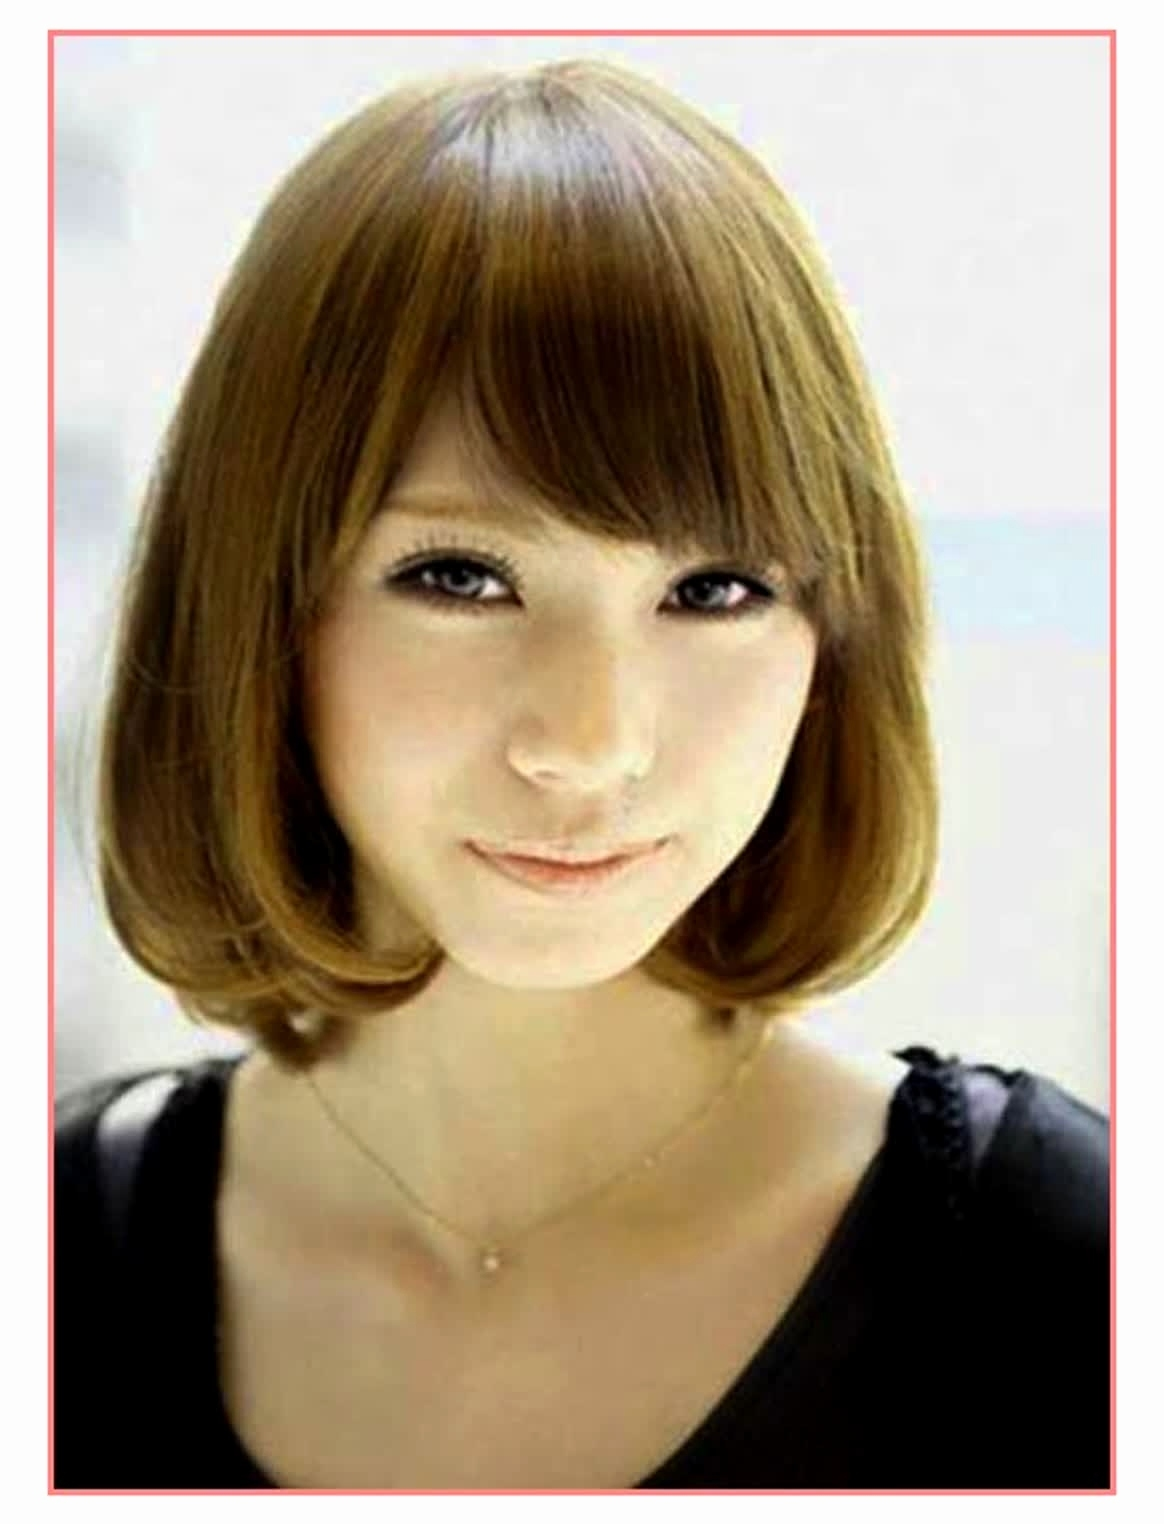 Asian Short Hairstyles For Round Faces Short Hairstyles For Round regarding Top-drawer Asian Haircut For Round Face Short Hair